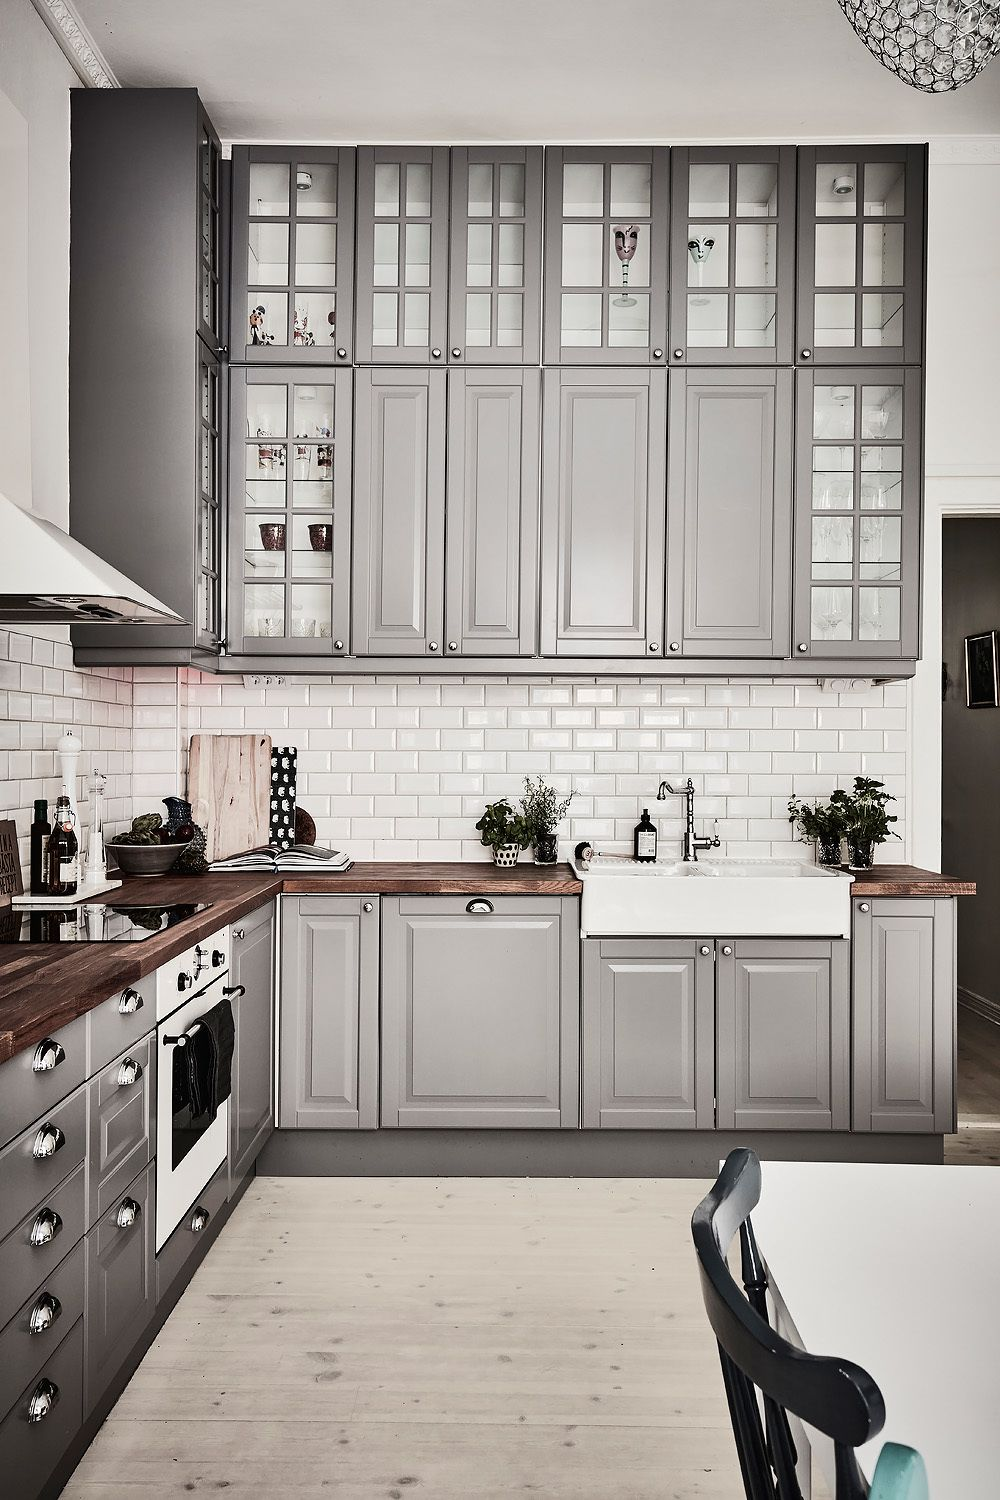 Inspiring Kitchens You Won't Believe are IKEA | Gray cabinets ...